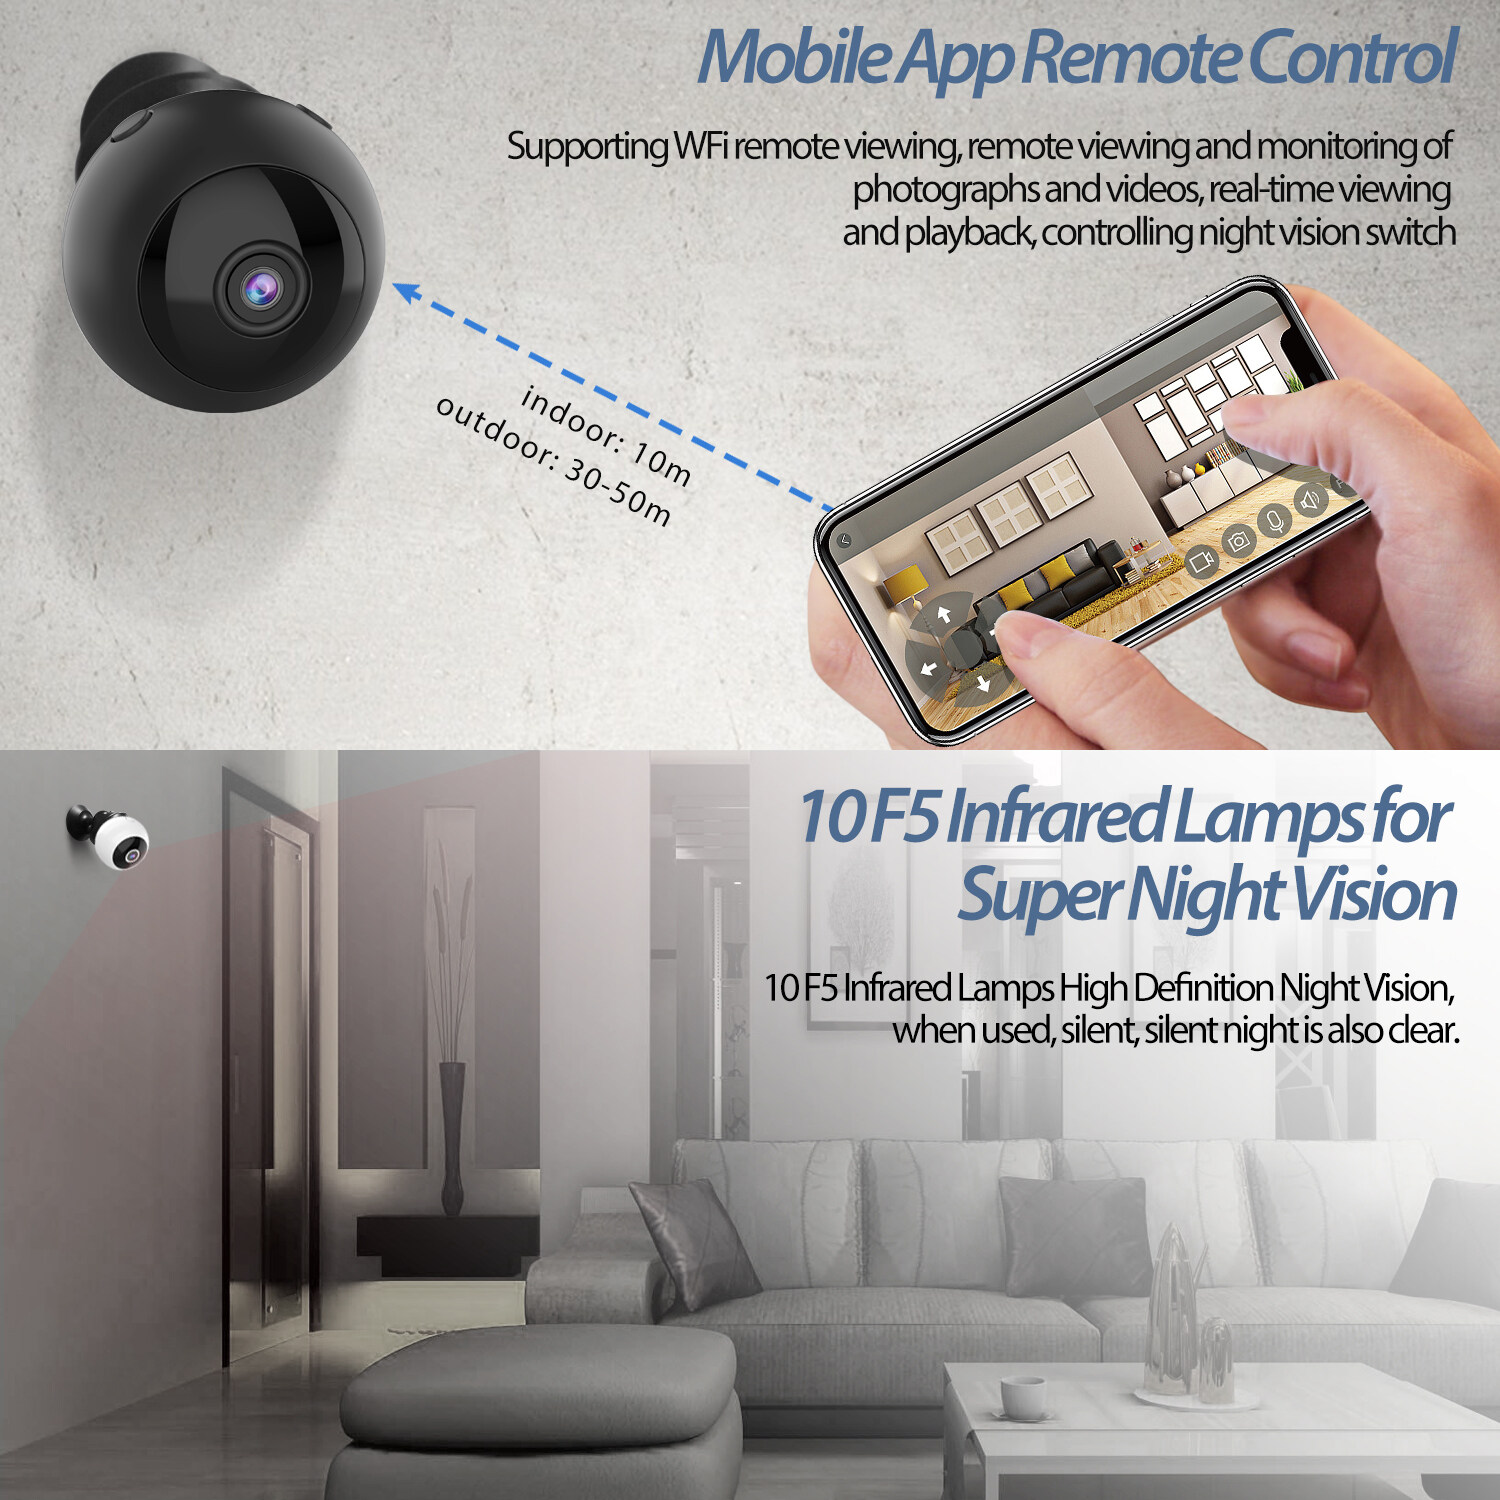 W8 Mini Wifi Camera Hd 1080p Magnet Bracket 150 Degree Wide Angle Night-Vis E3T6 4